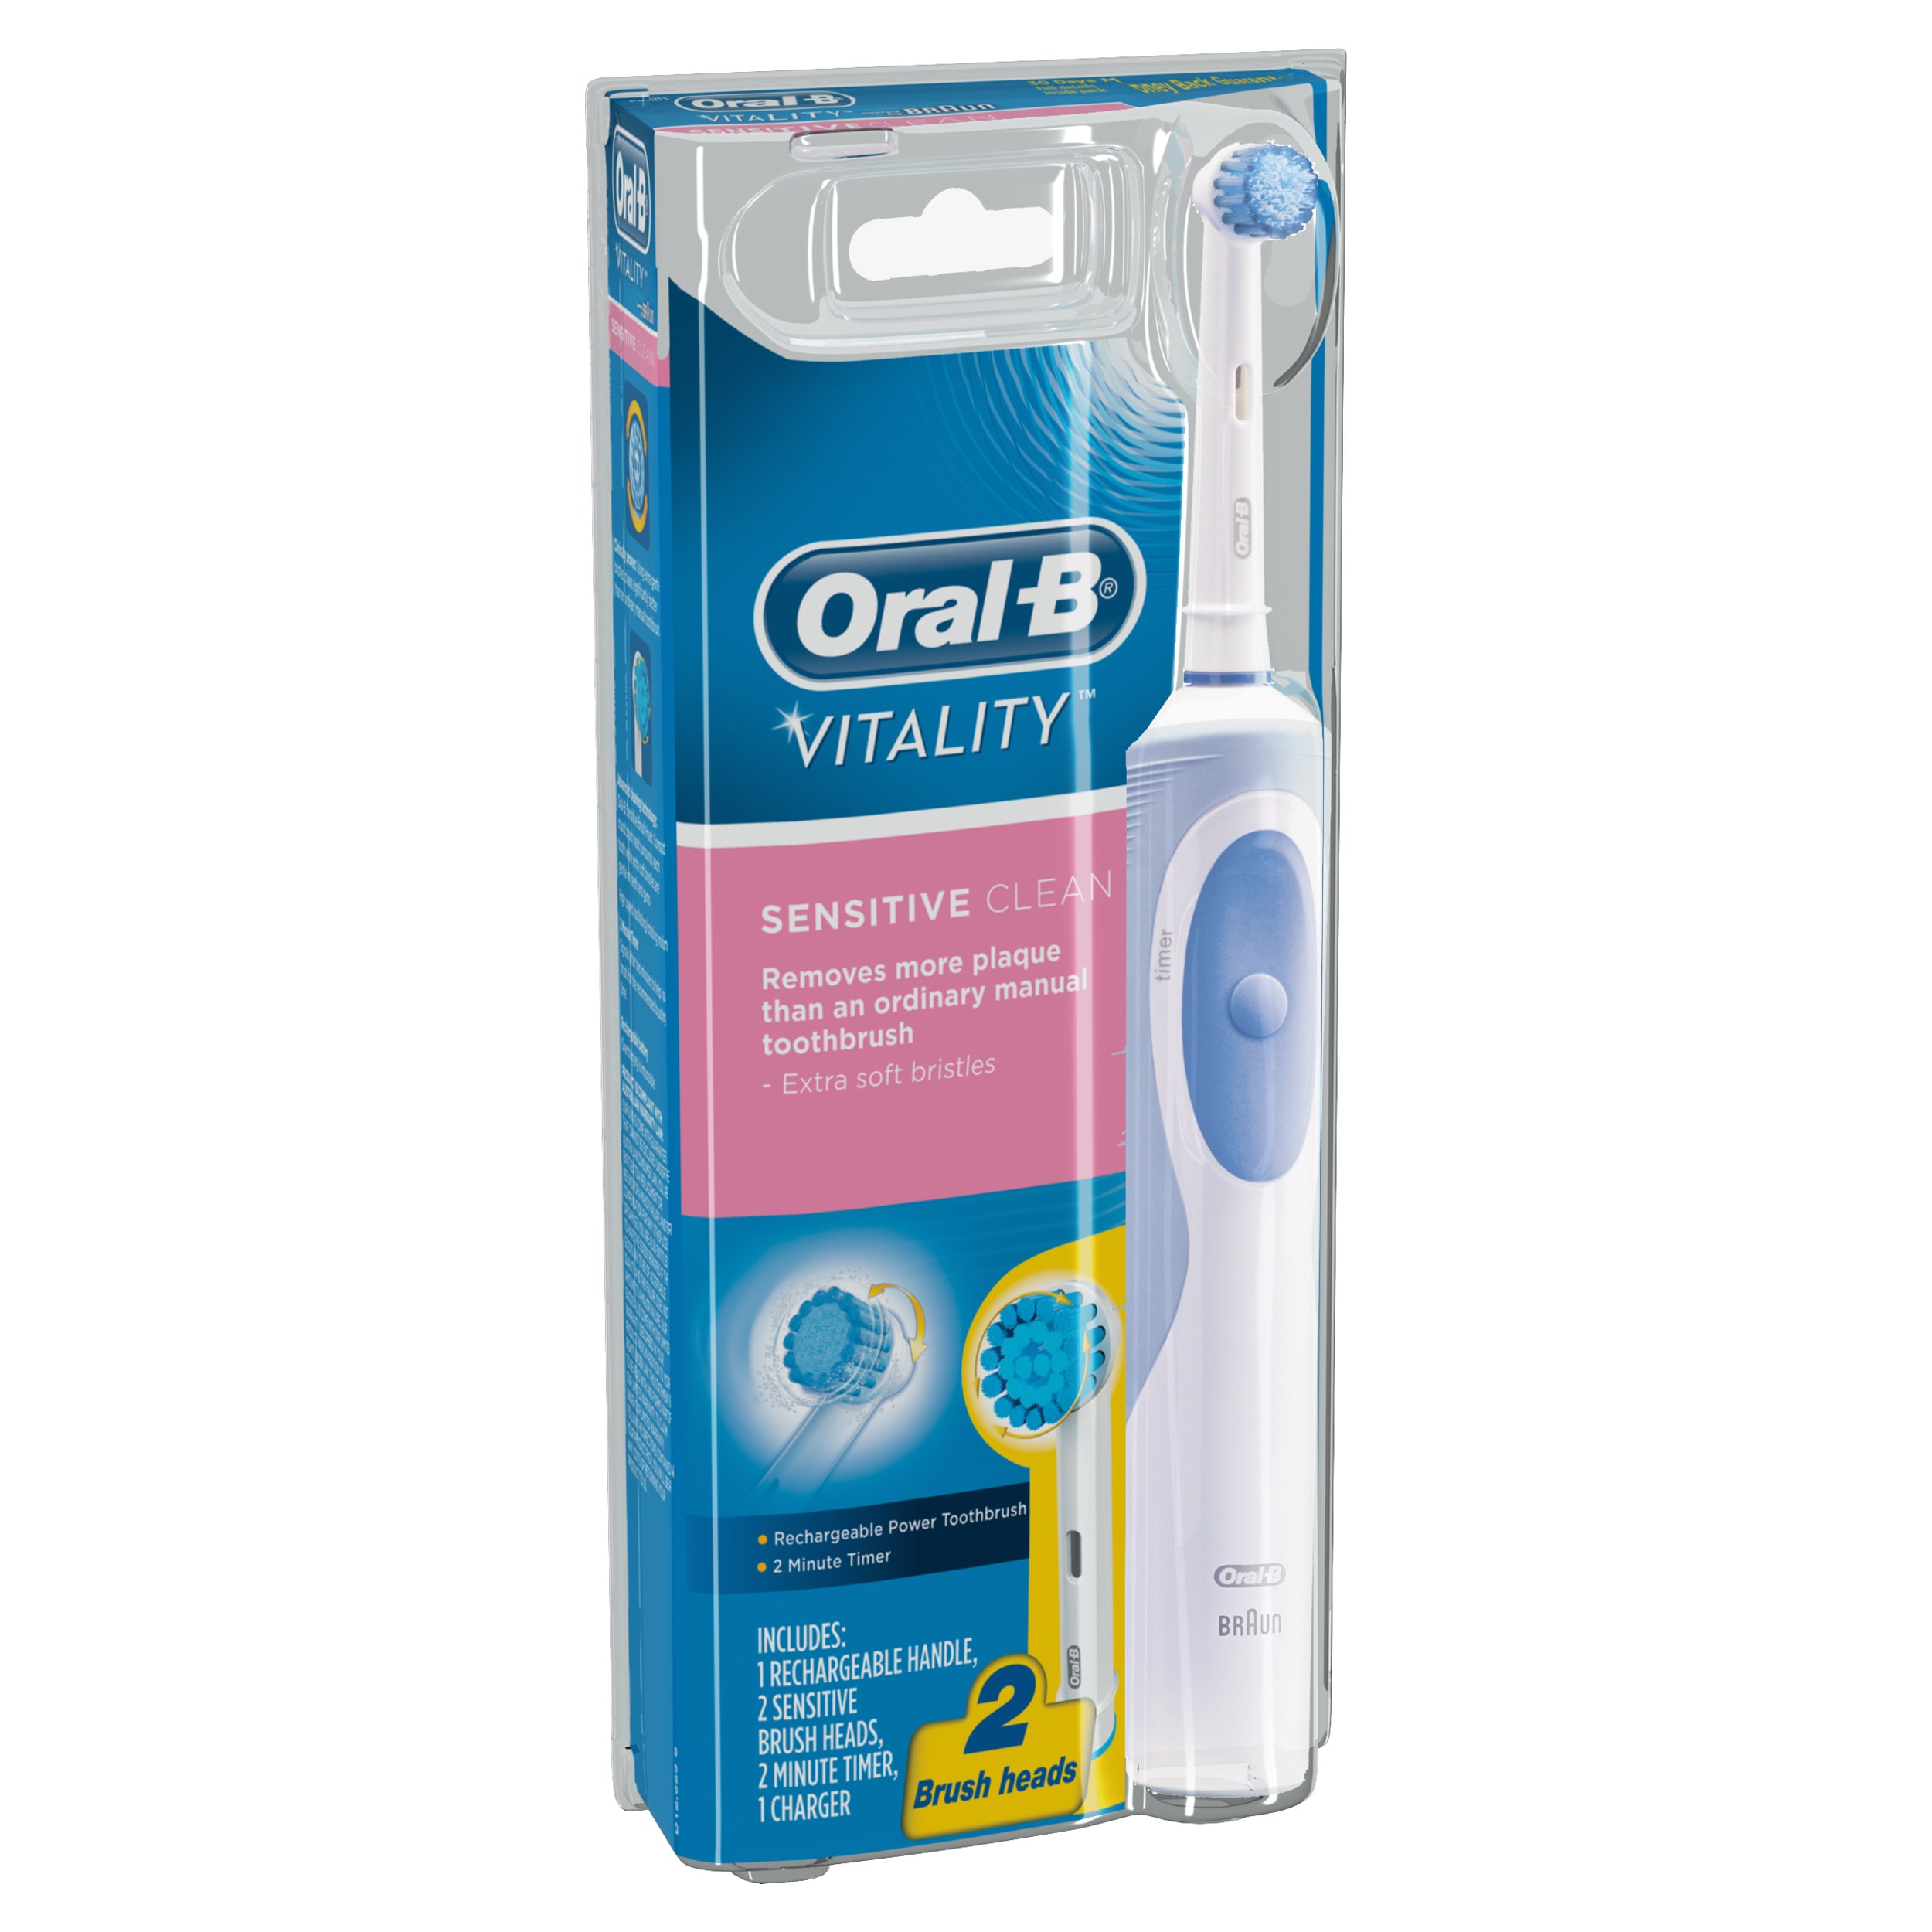 Oral-B Vitality Sensitive Electric Toothbrush